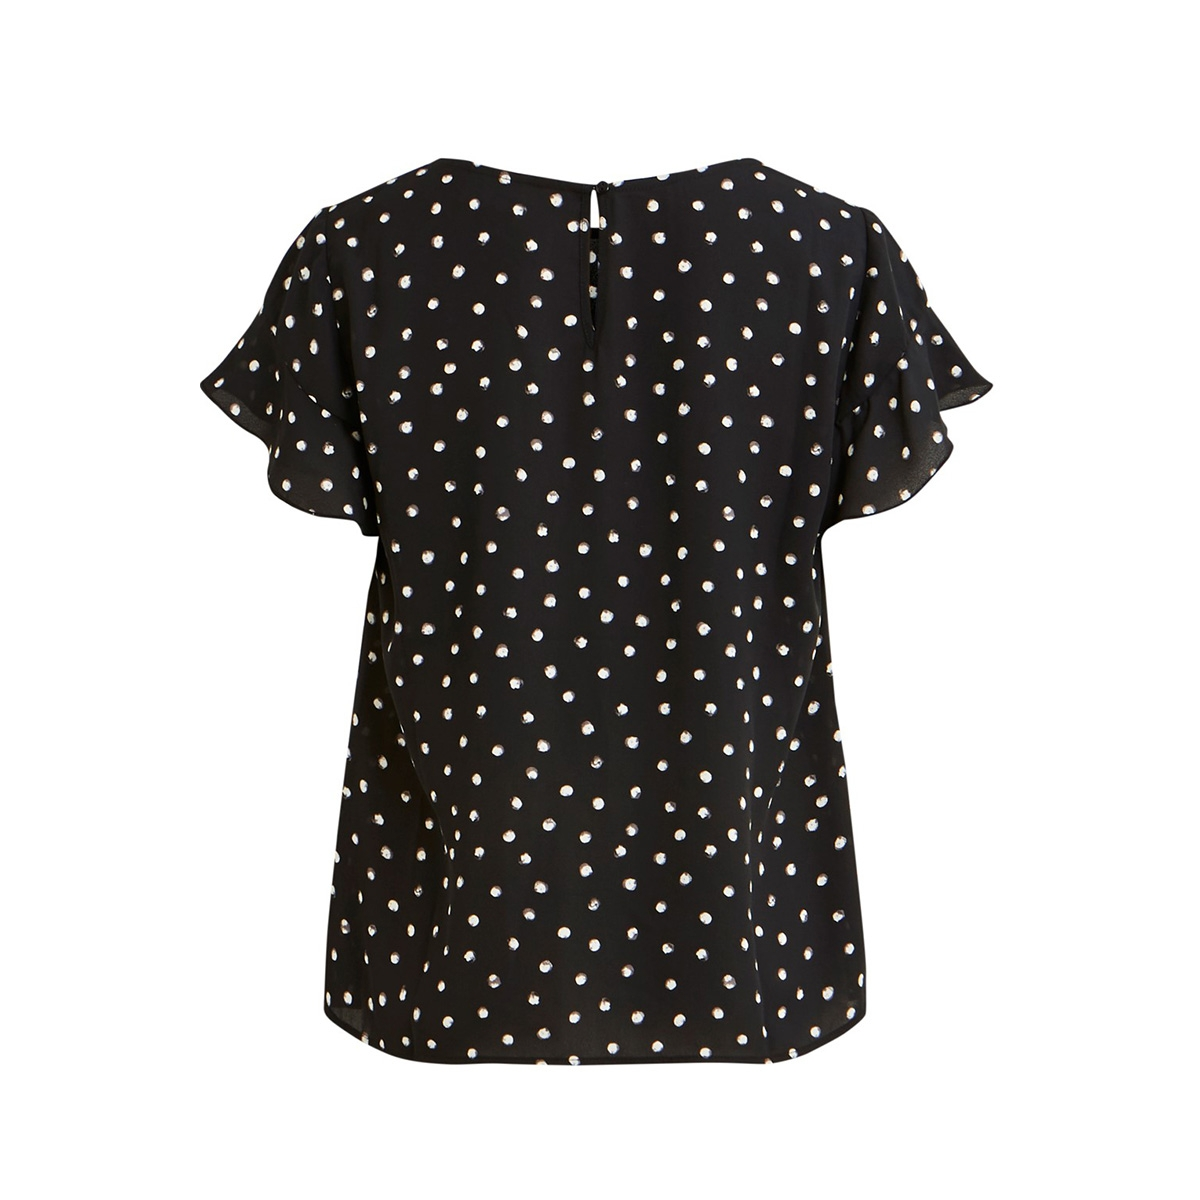 vilucy s/s flounce top - fav lux 14049944 vila t-shirt black/cloud dancer